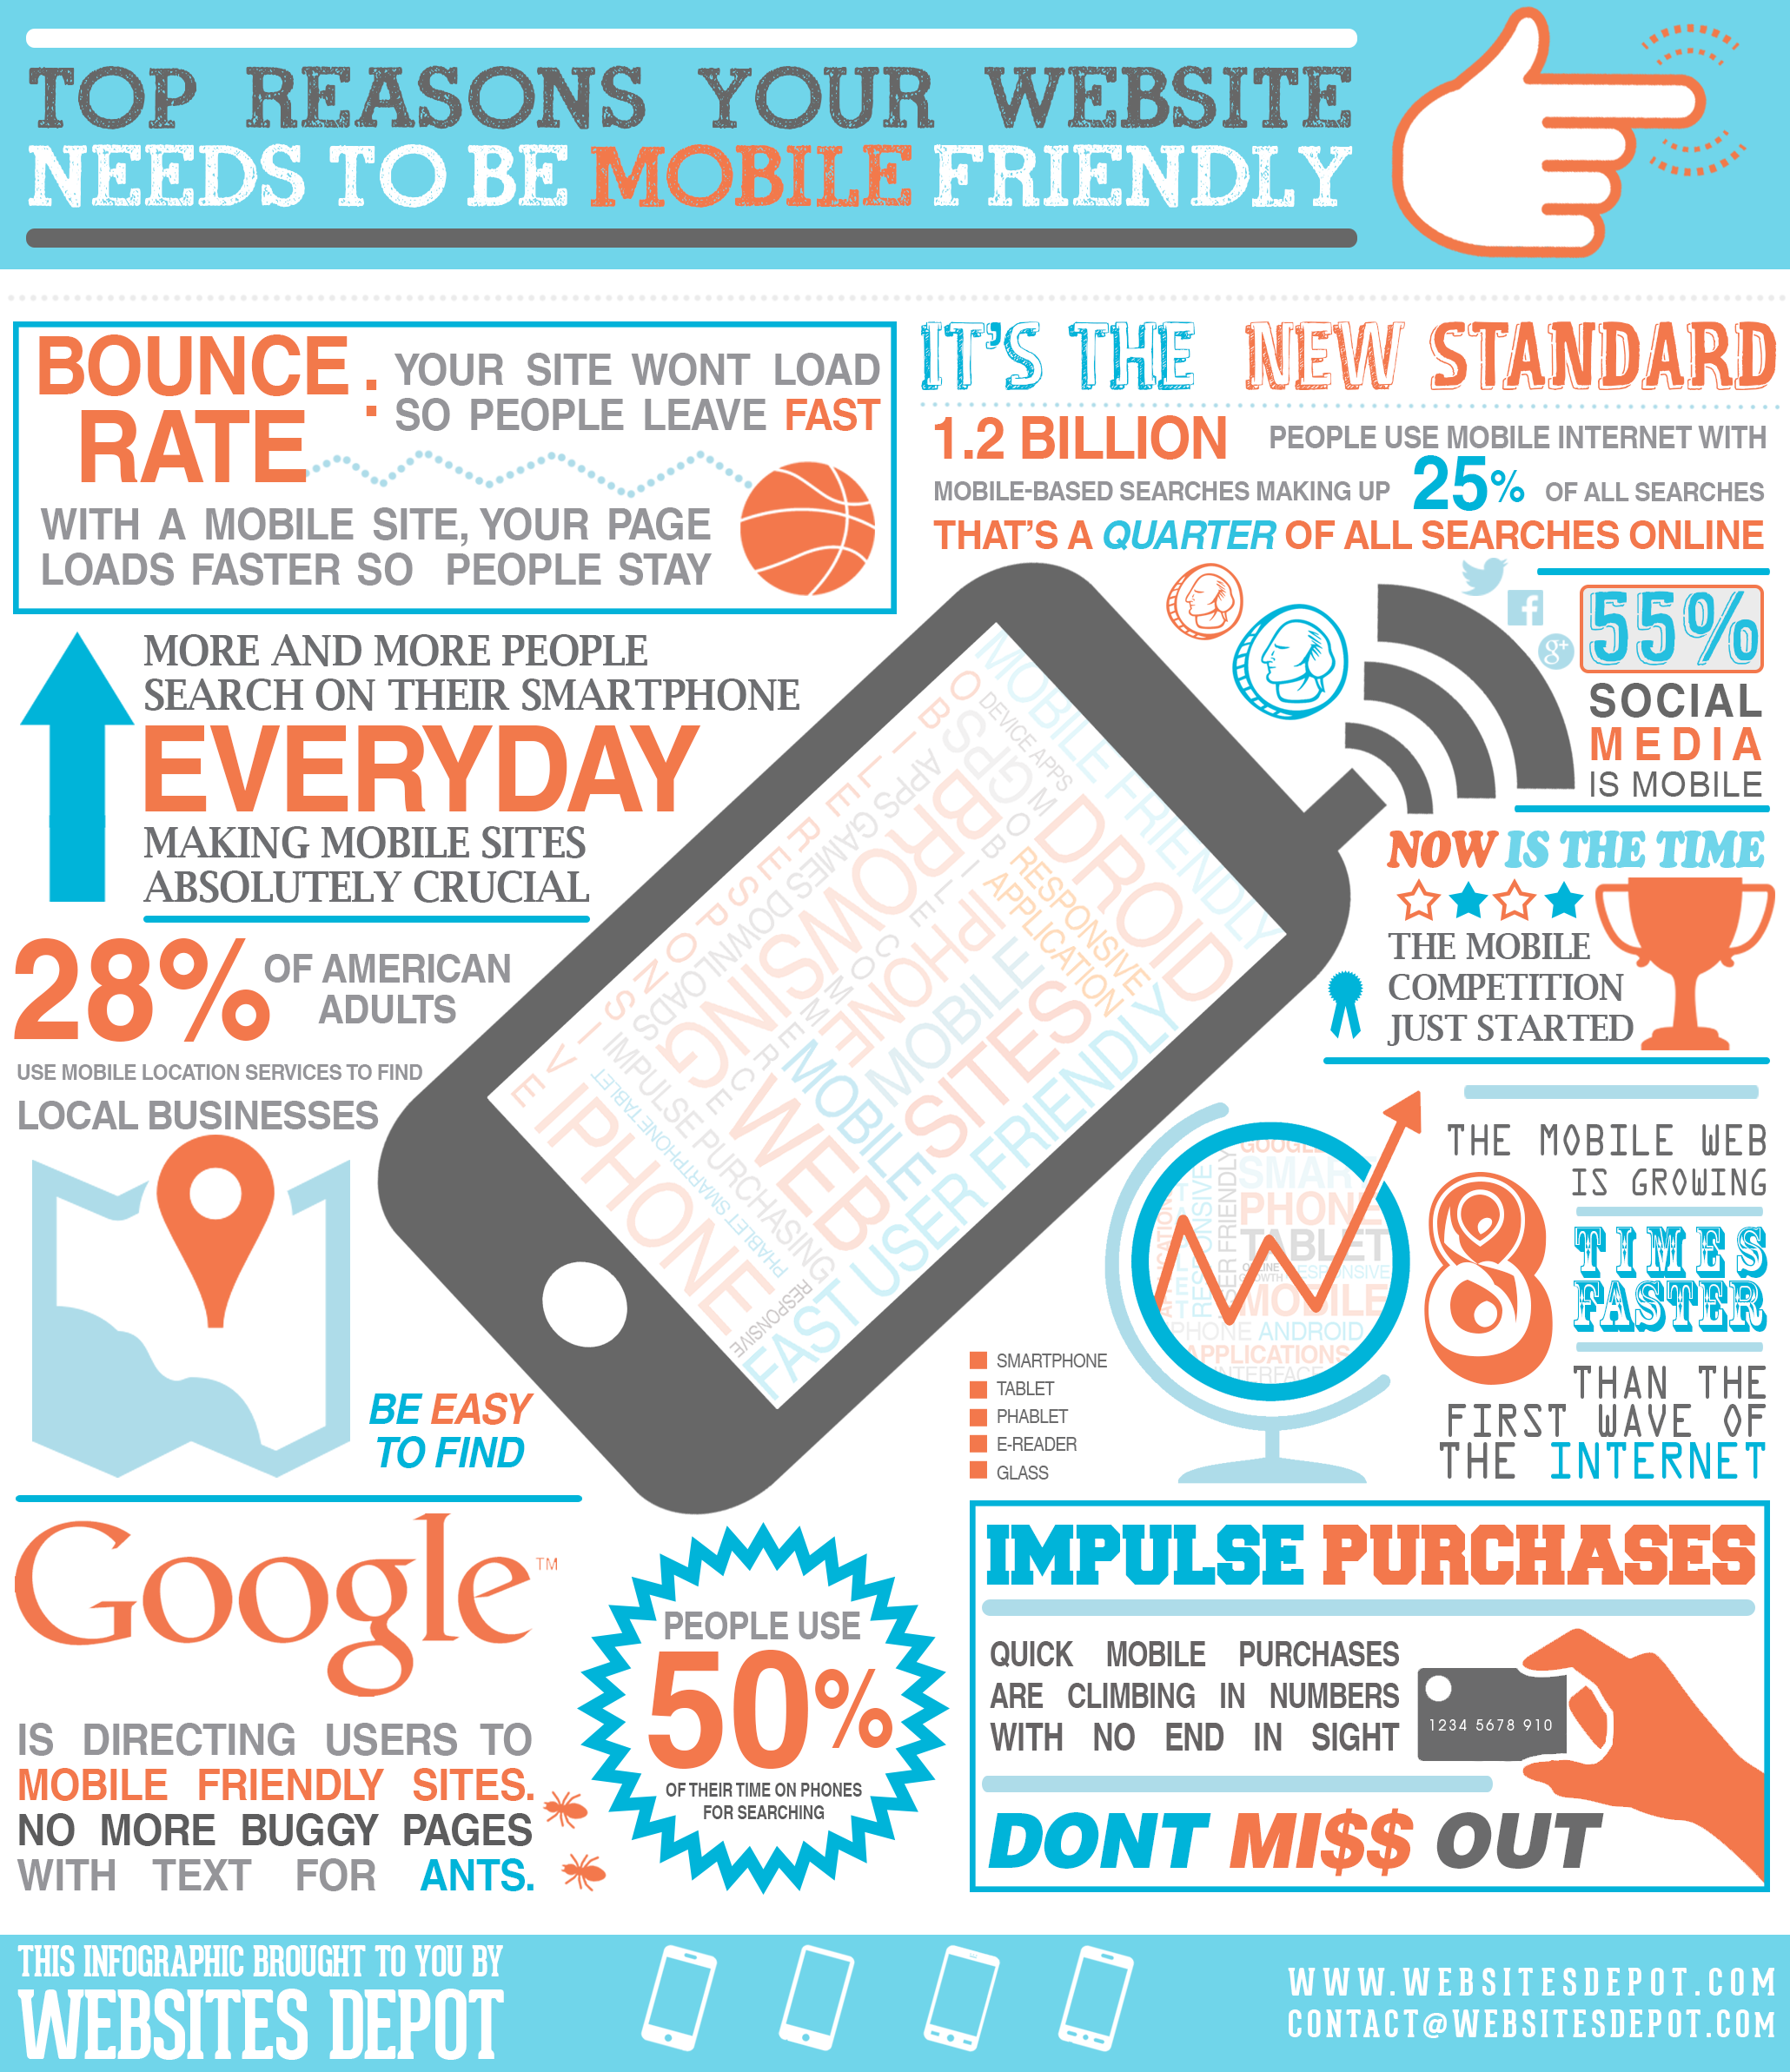 Top Reasons Your Site Needs To Be Mobile Friendly